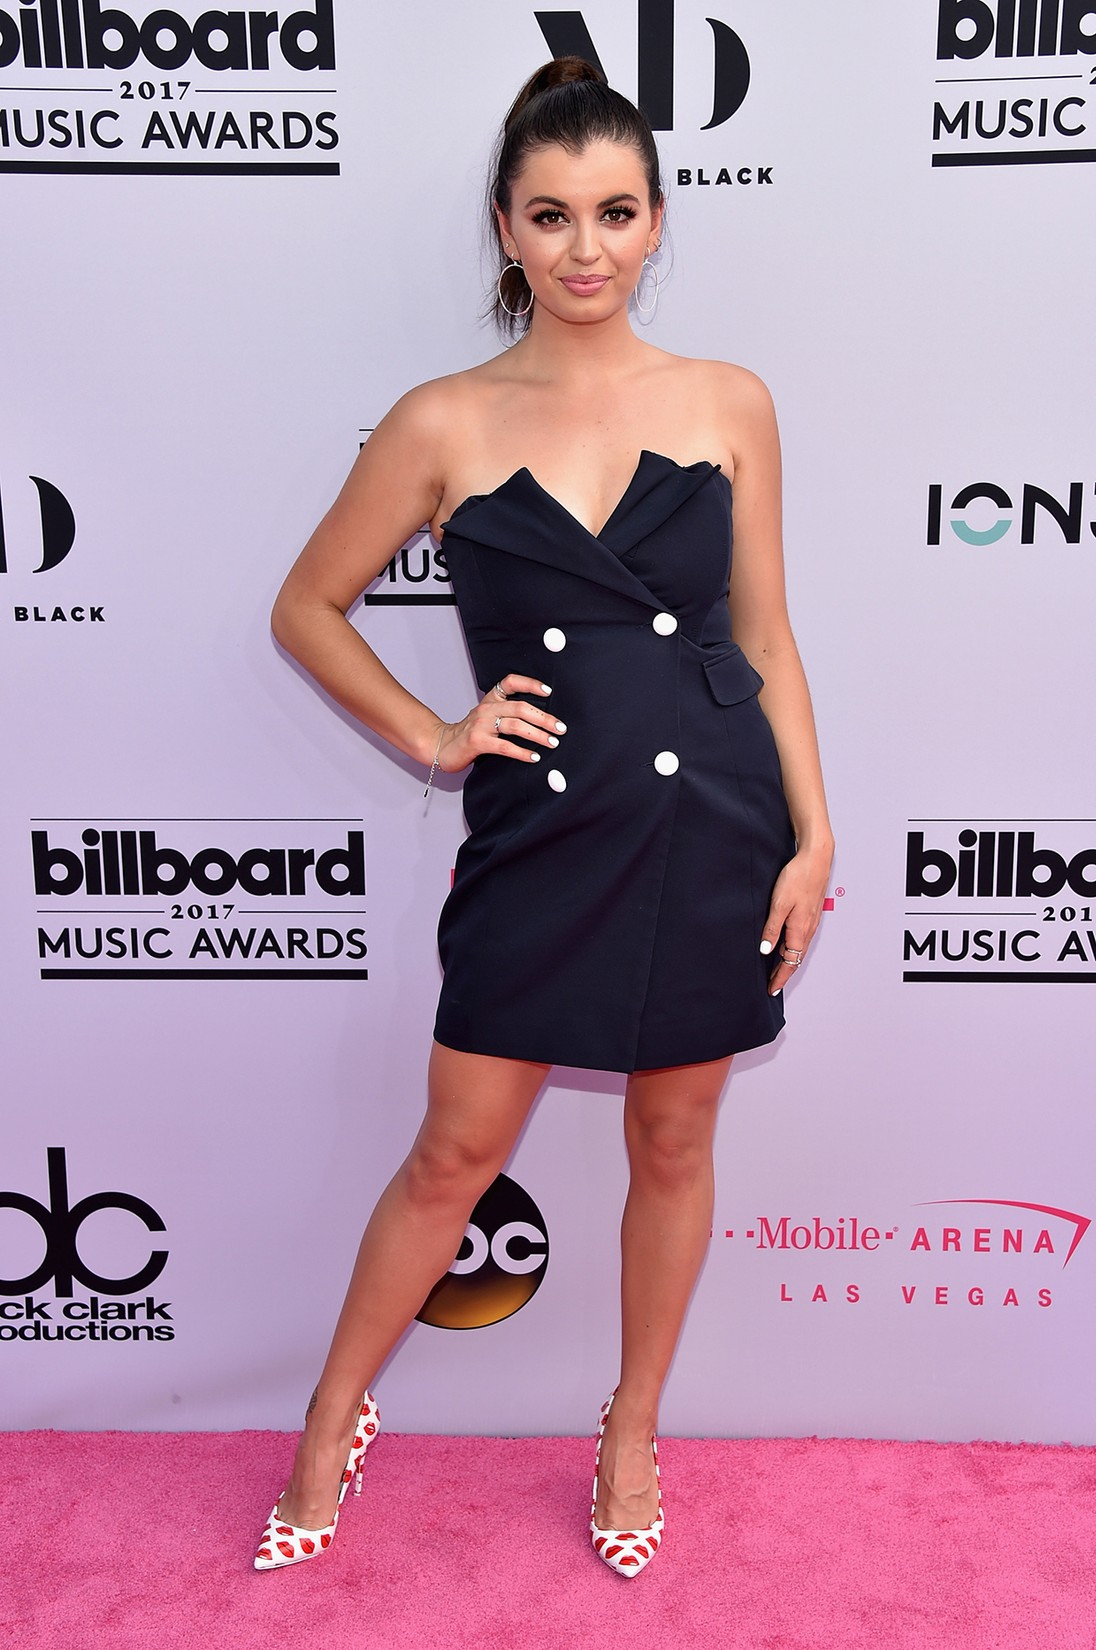 Rebecca Black attends the 2017 Billboard Music Awards at T-Mobile Arena on May 21, 2017 in Las Vegas.